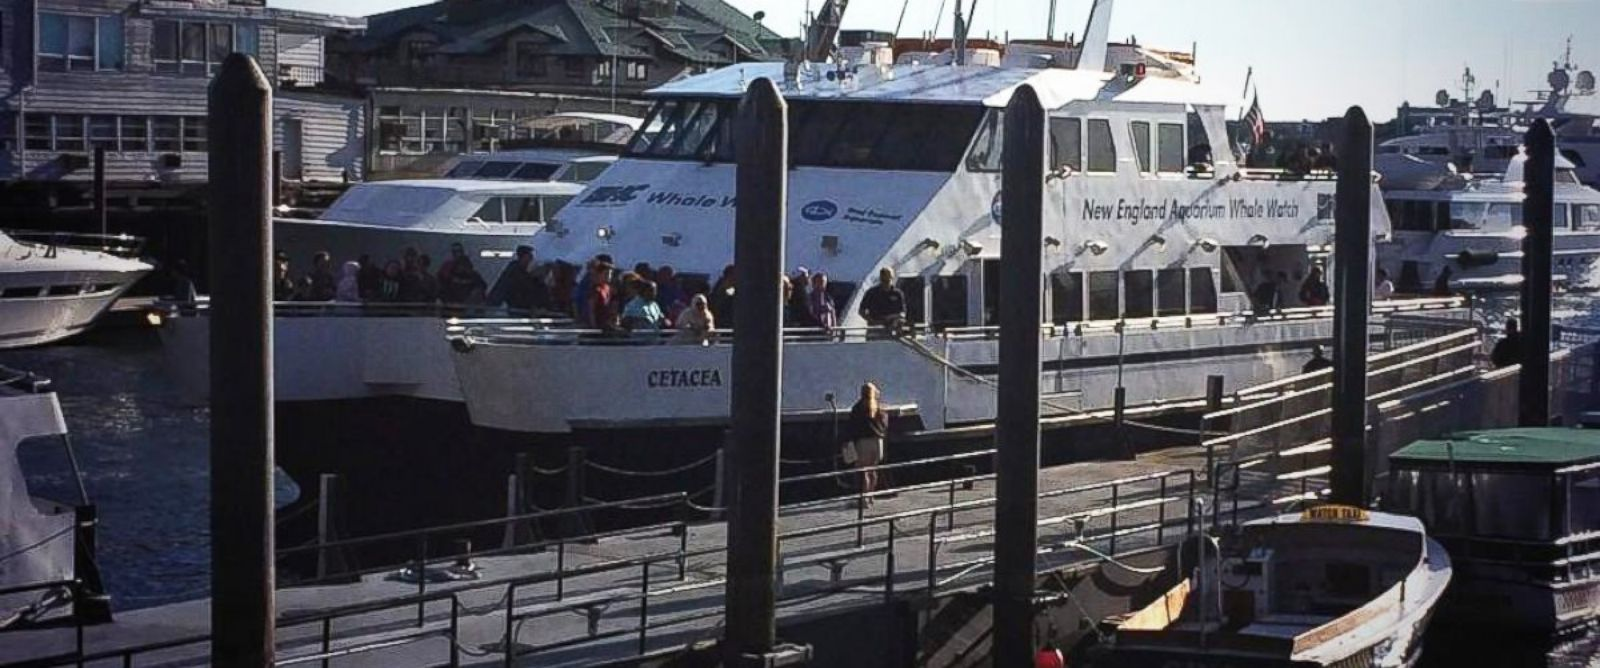 PHOTO: A whale-watching boat docks at Boston Harbor, July 29, 2014, after being stranded overnight.